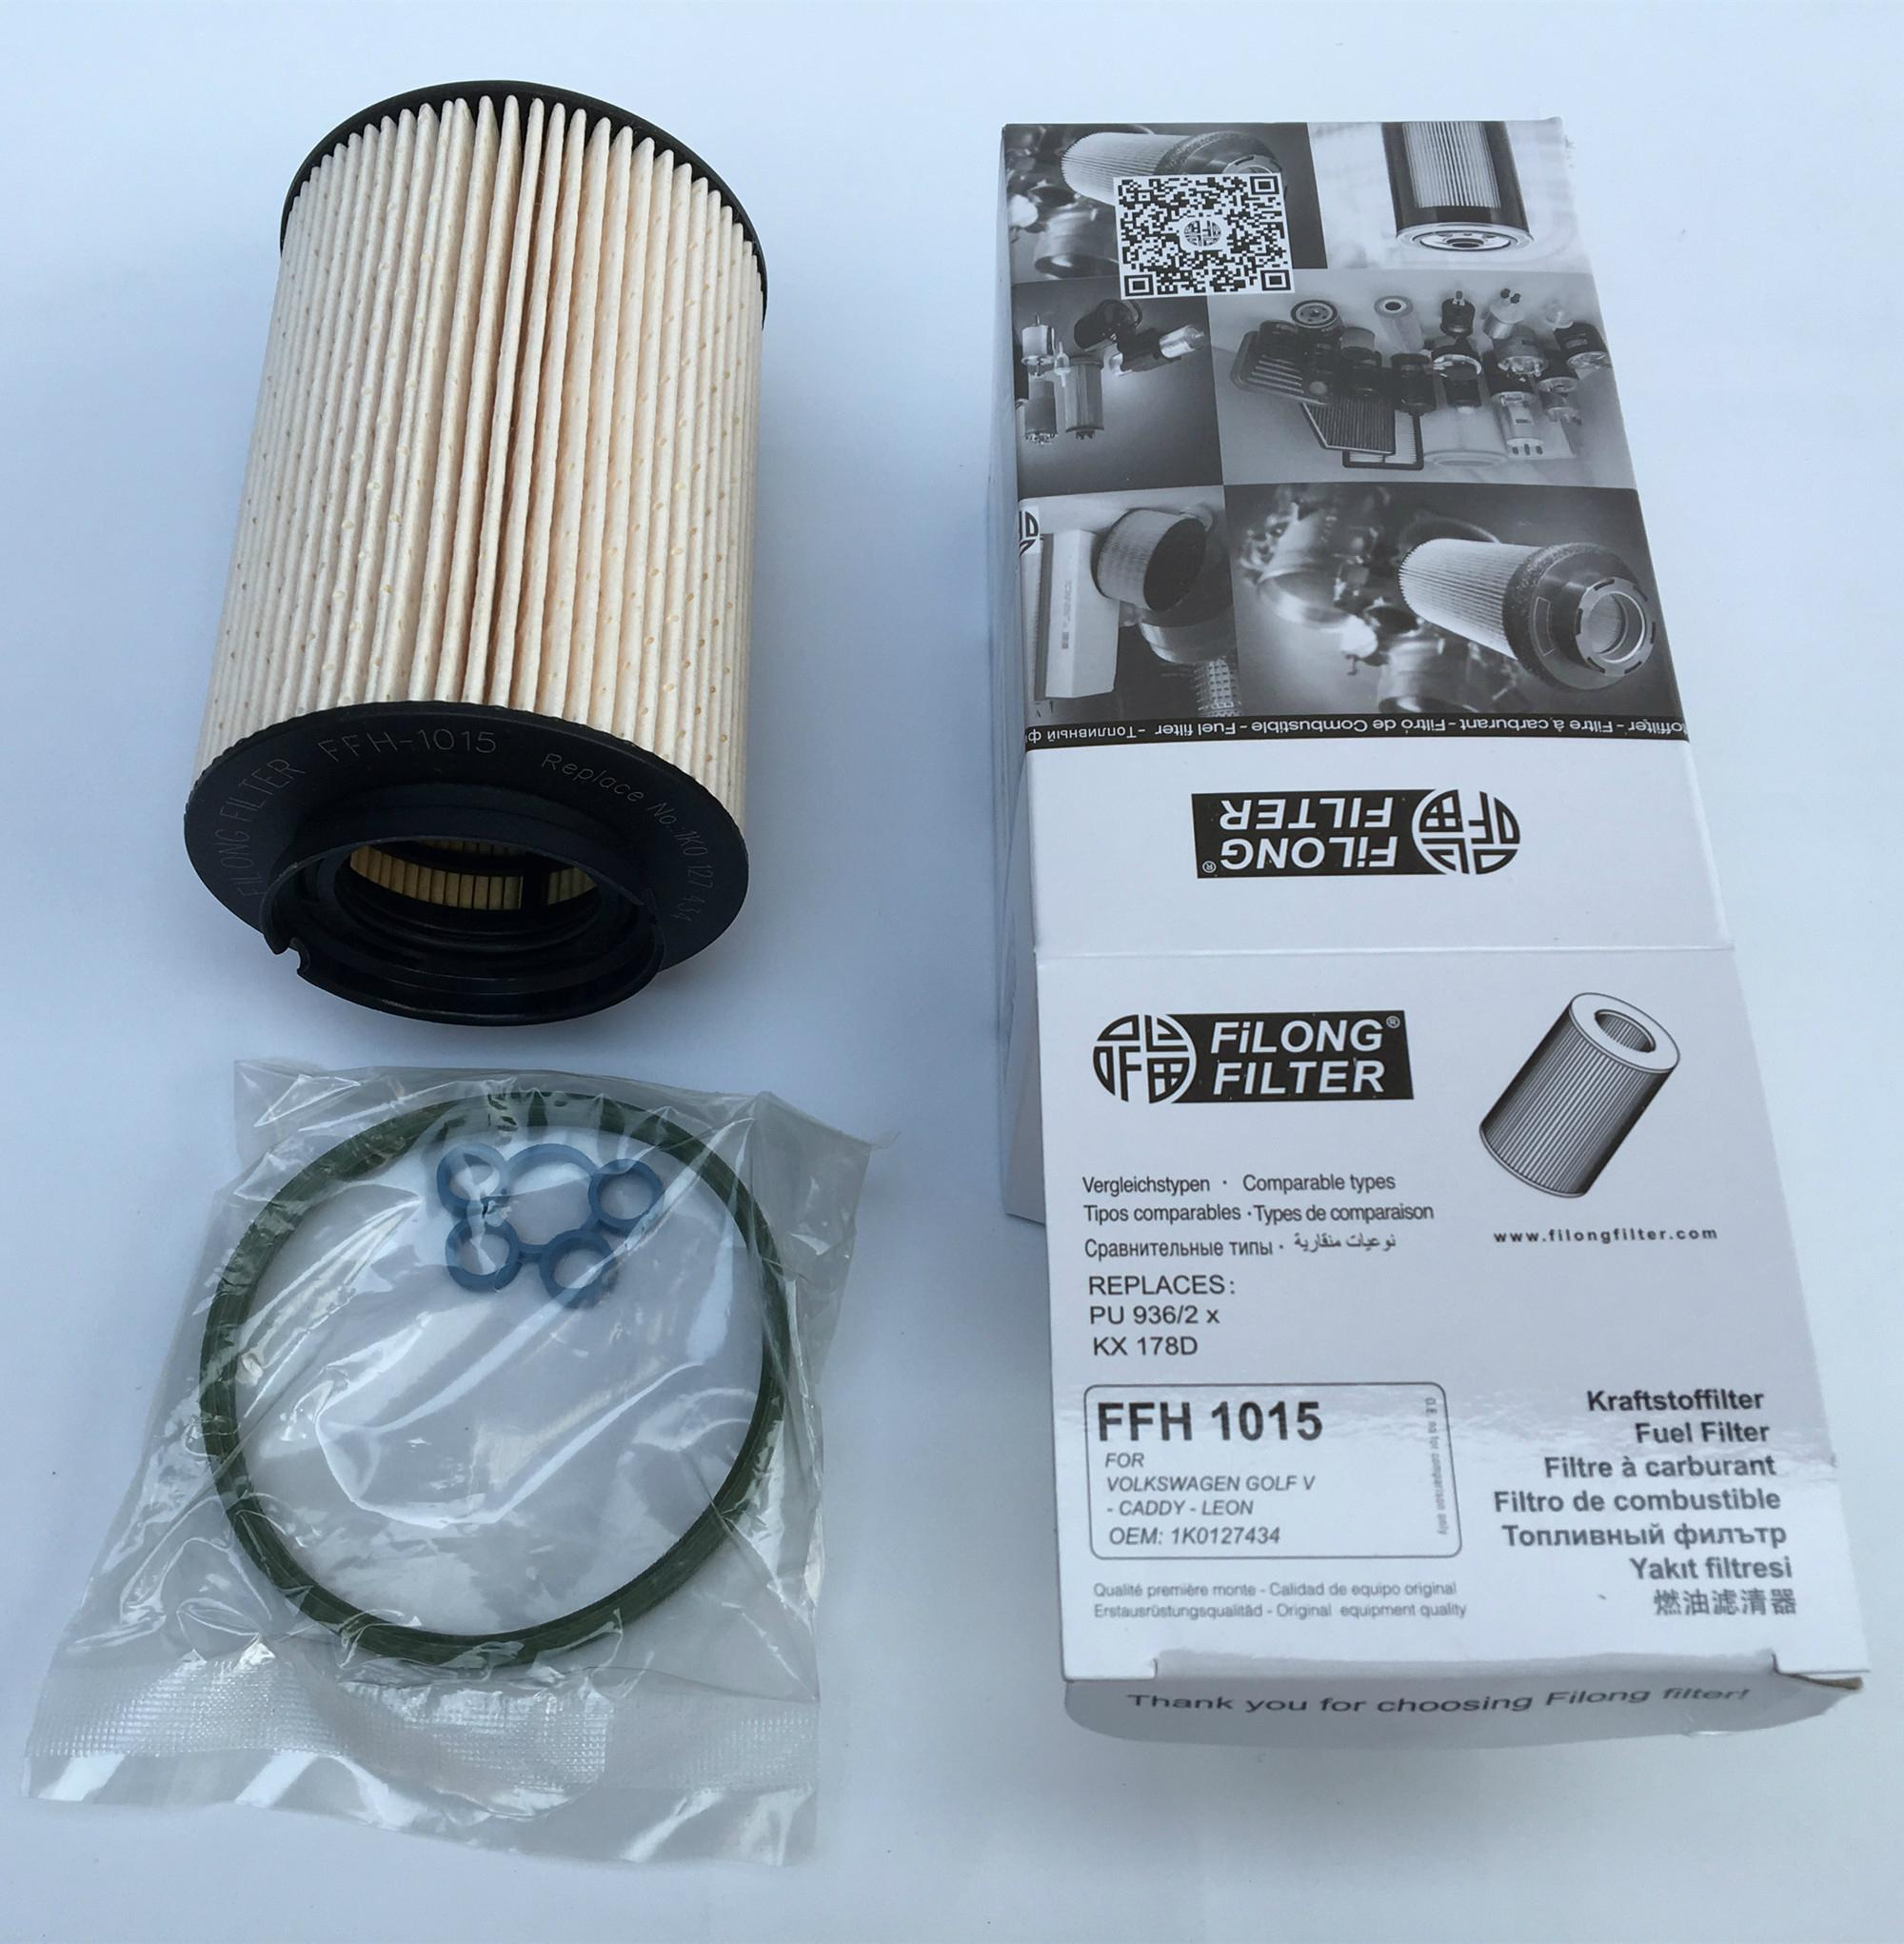 FILONG Automotive Filter  FFH-1015,1K0127434, PU936/2x,KX178D,E72KPD107,	1K0127177, 1K0127177A, 1K0127400C, 1K0127400L, 1K0127434A, 3D0127400C